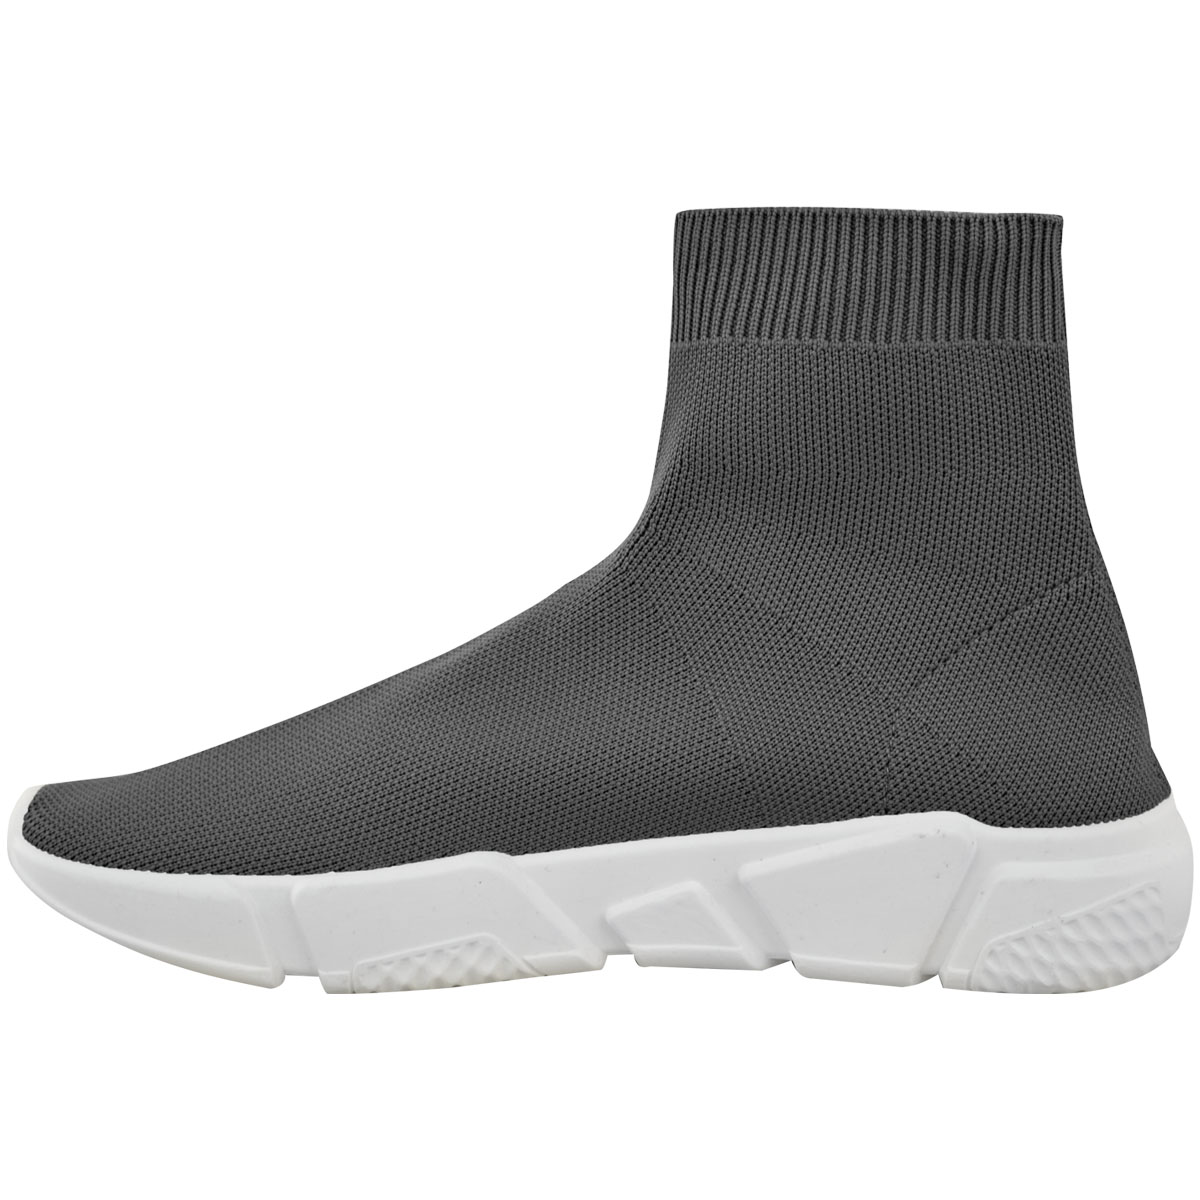 New-Womens-Ladies-Sneakers-Trainers-Sock-Runners-Comfy-Speed-Knit-Gym-Shoes-Size Indexbild 25